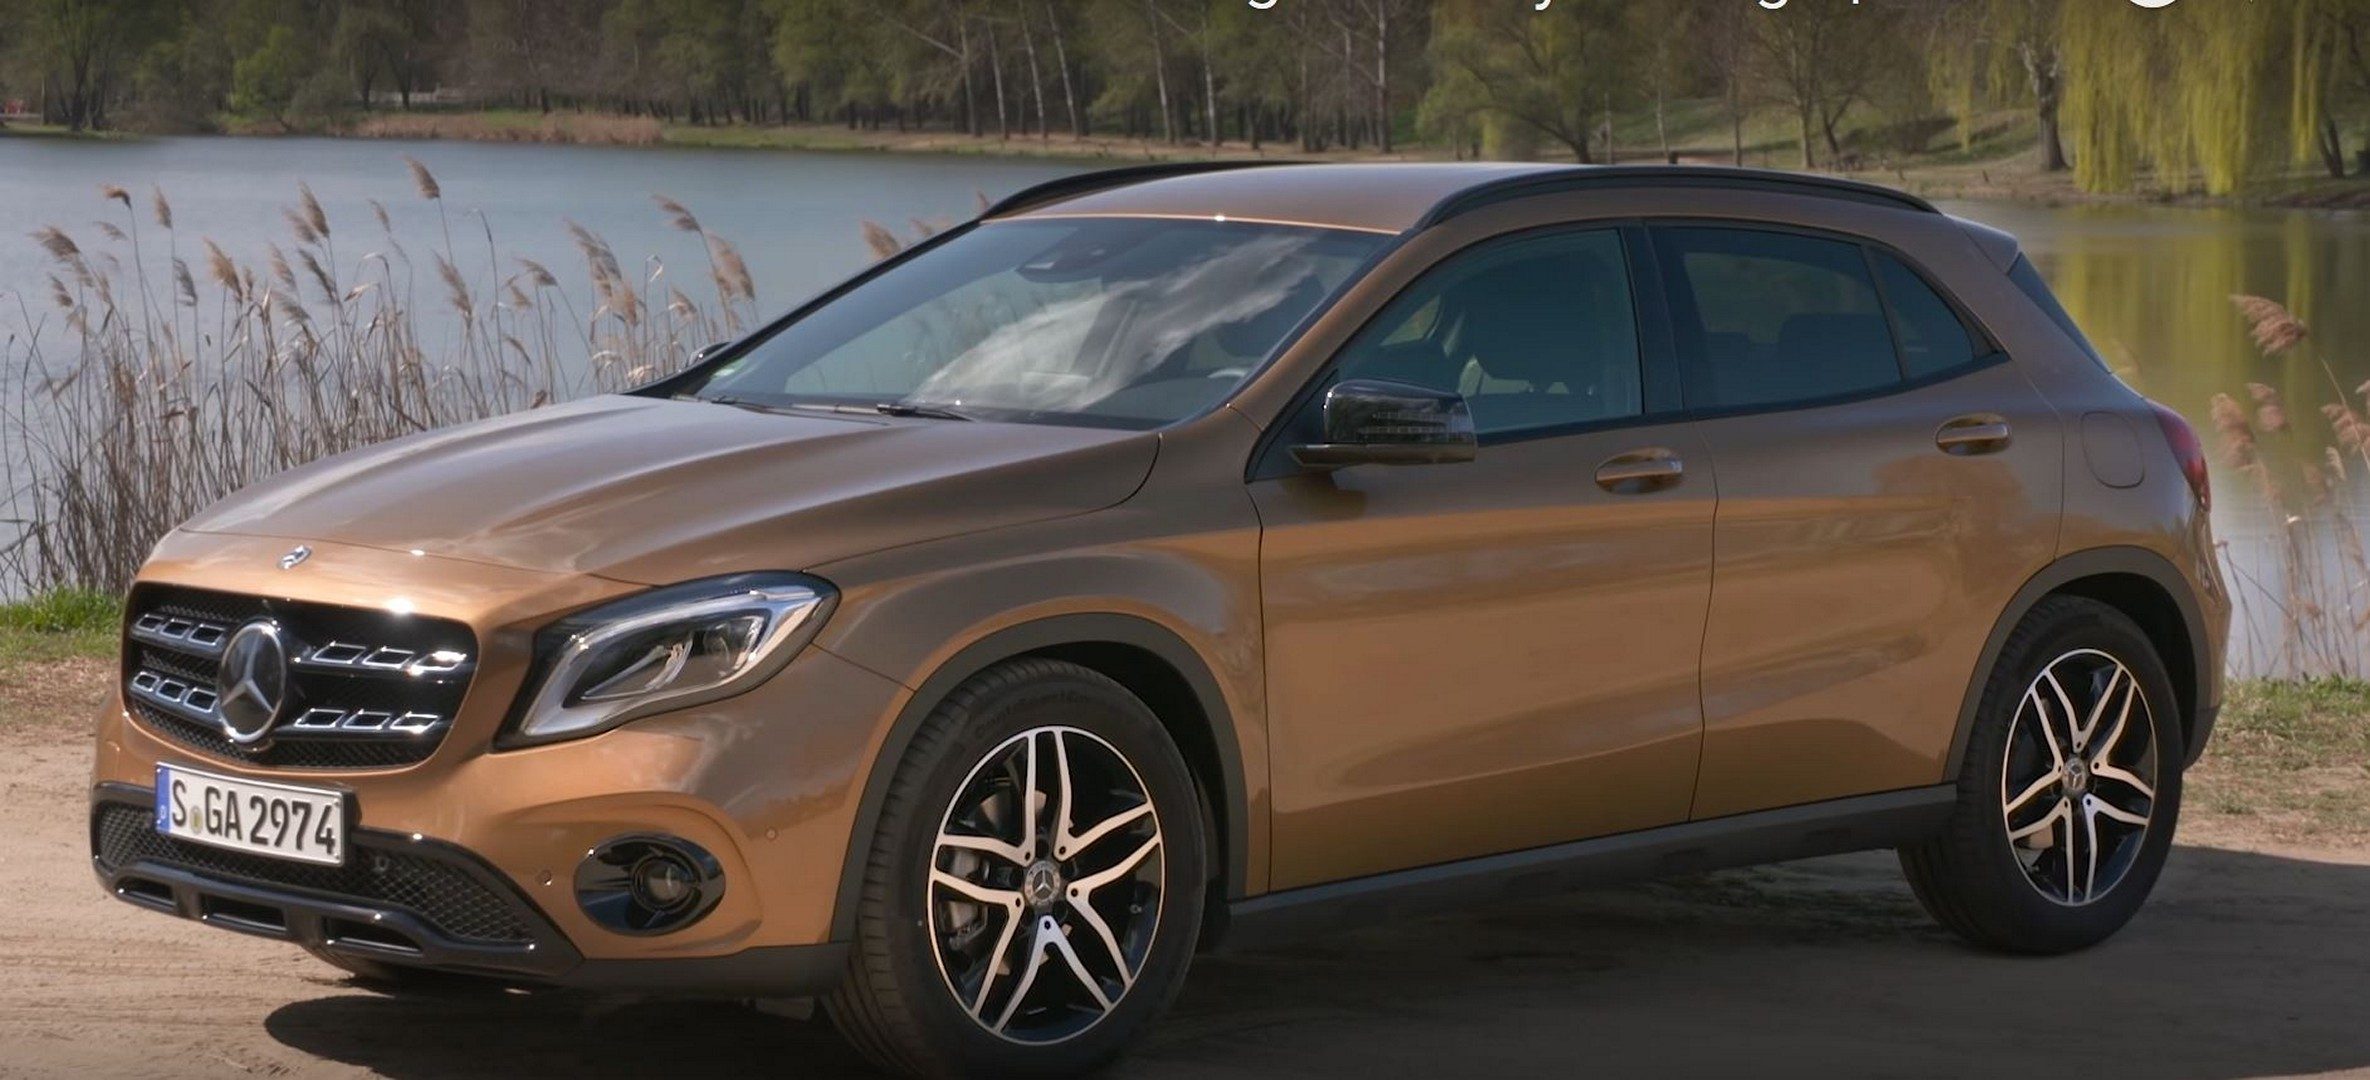 Mercedes Glc Facelift 2018 >> 2018 Mercedes-Benz GLA Videos Show Canyon Beige and Jupiter Red Paint - autoevolution